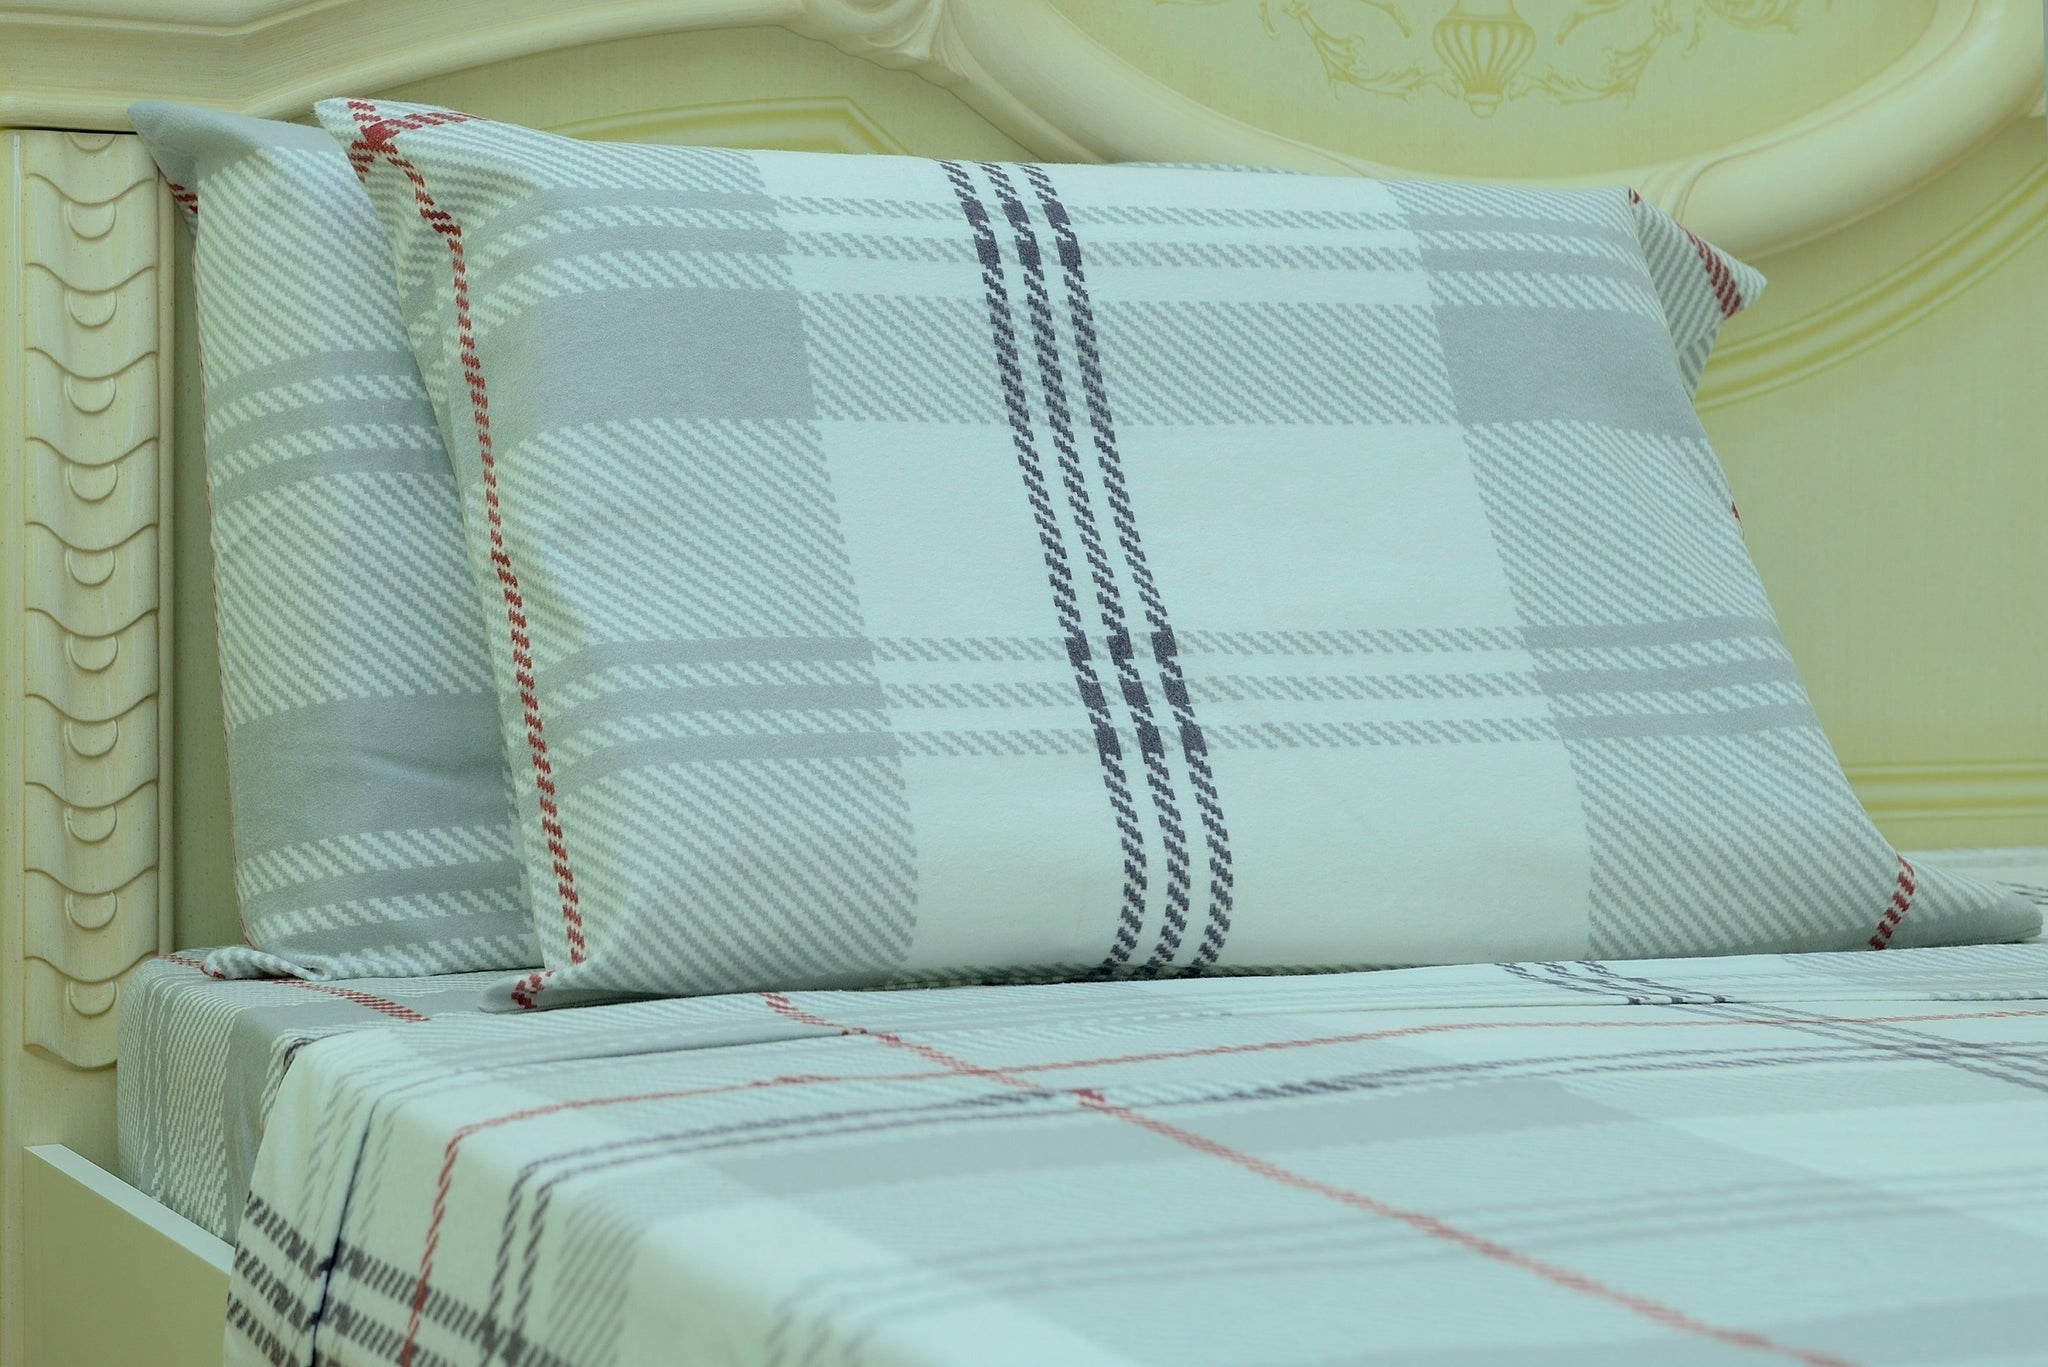 Flannel Flat Sheet - %100 Cotton, Brushed, Top Sheet - White Plaid - Queen Size